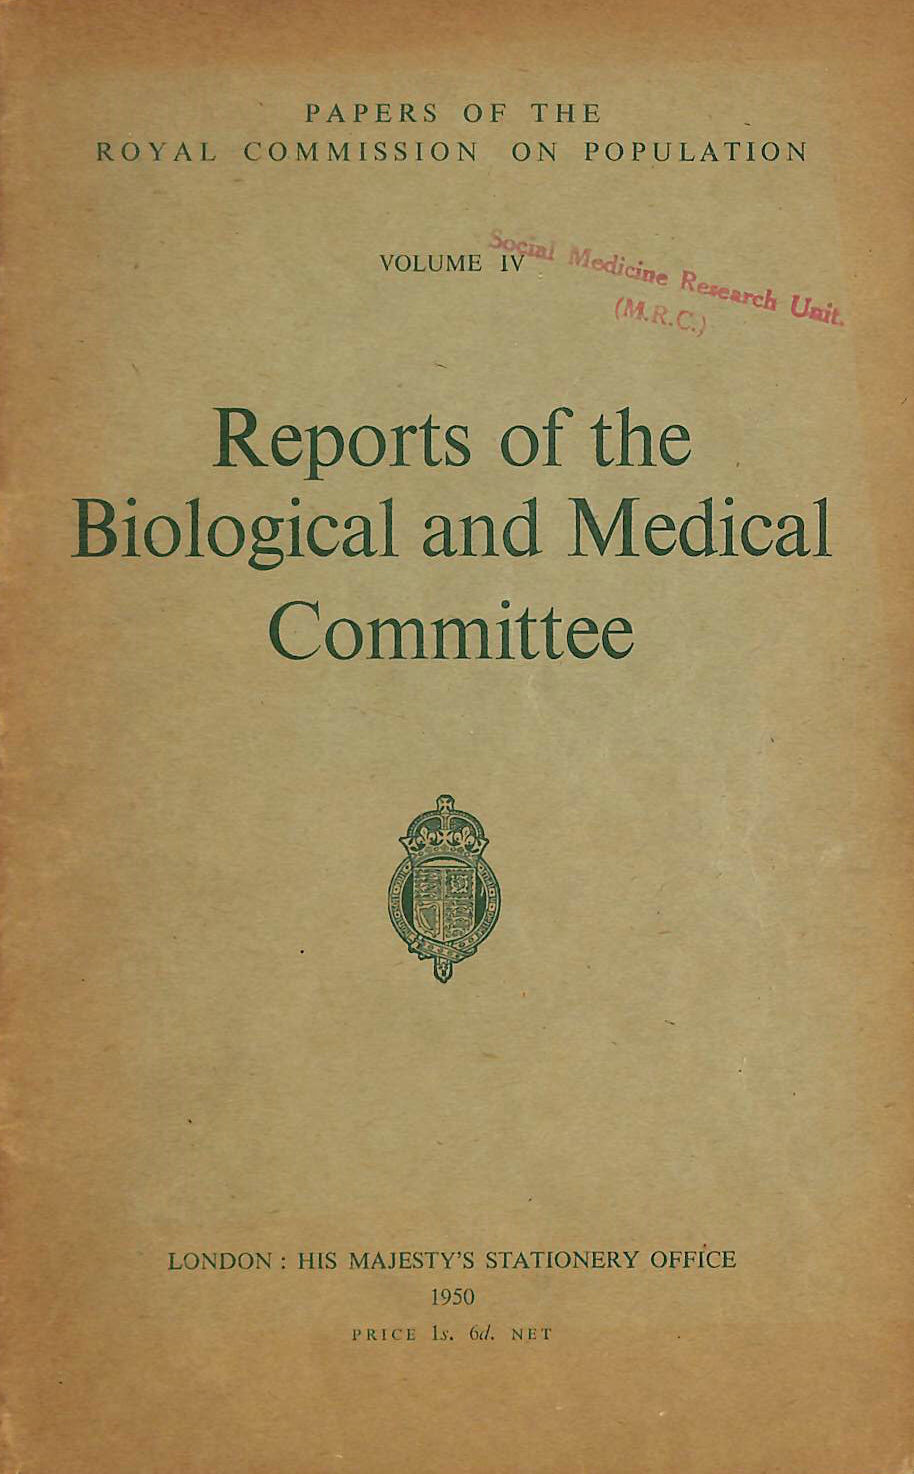 Image for Reports of the Biological and Medical Committee, Volume IV